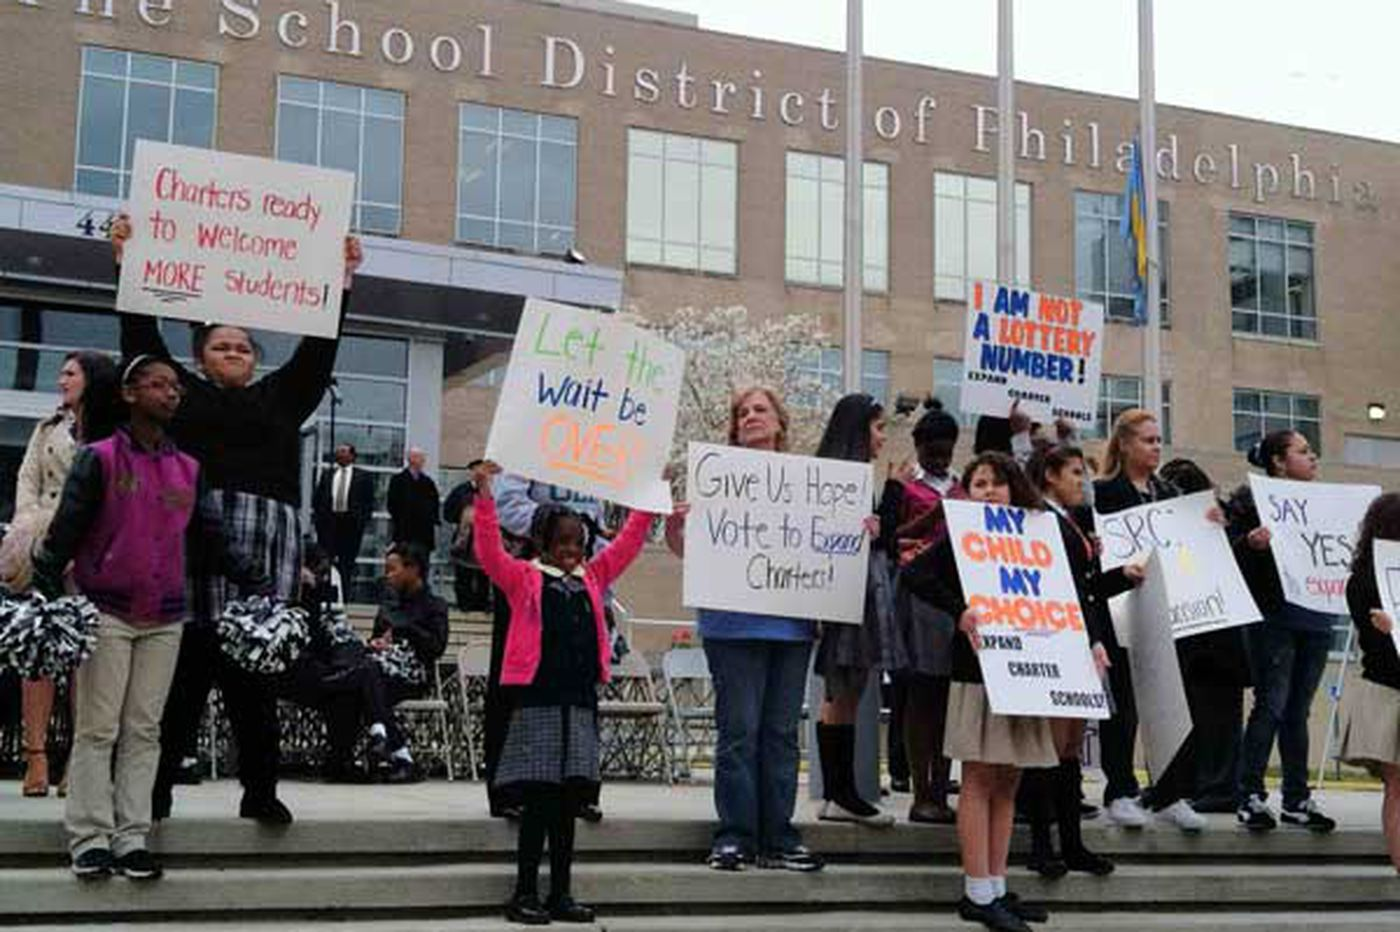 More Philadelphia voters support than oppose charter schools, Inquirer poll finds